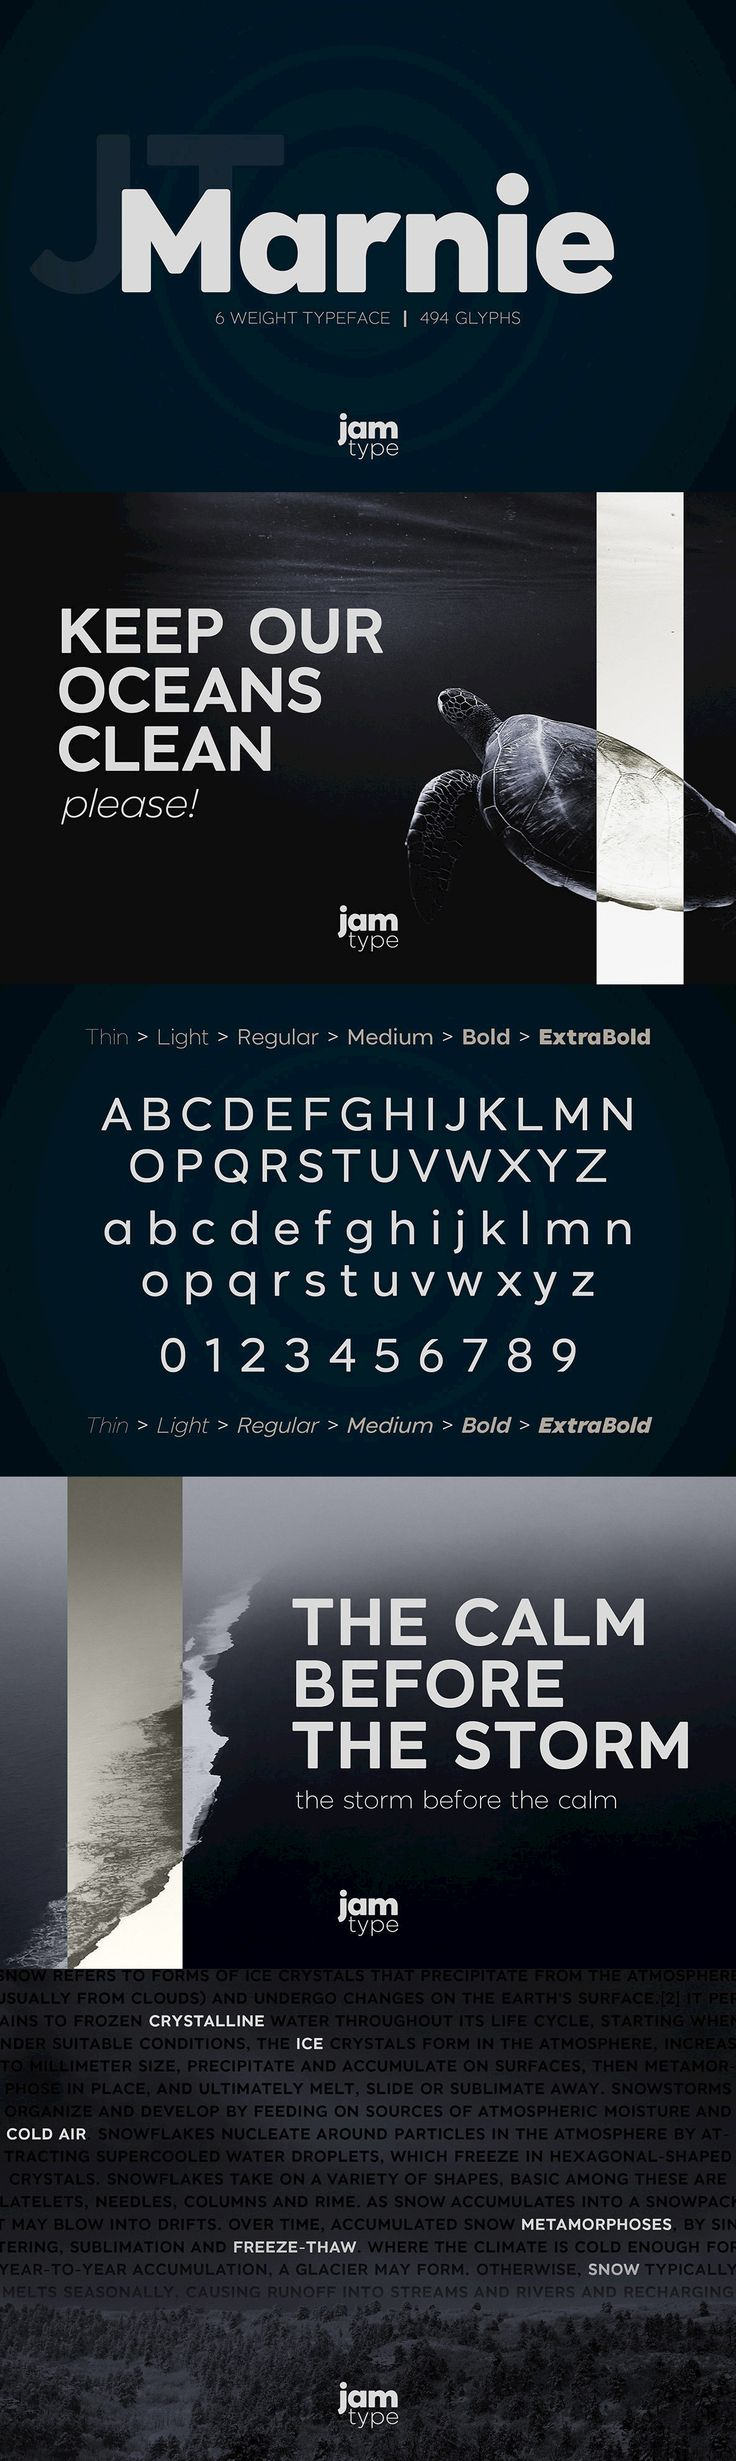 JT Marnie - The design is influenced by the geometric style sans serif faces which were popular during the ...